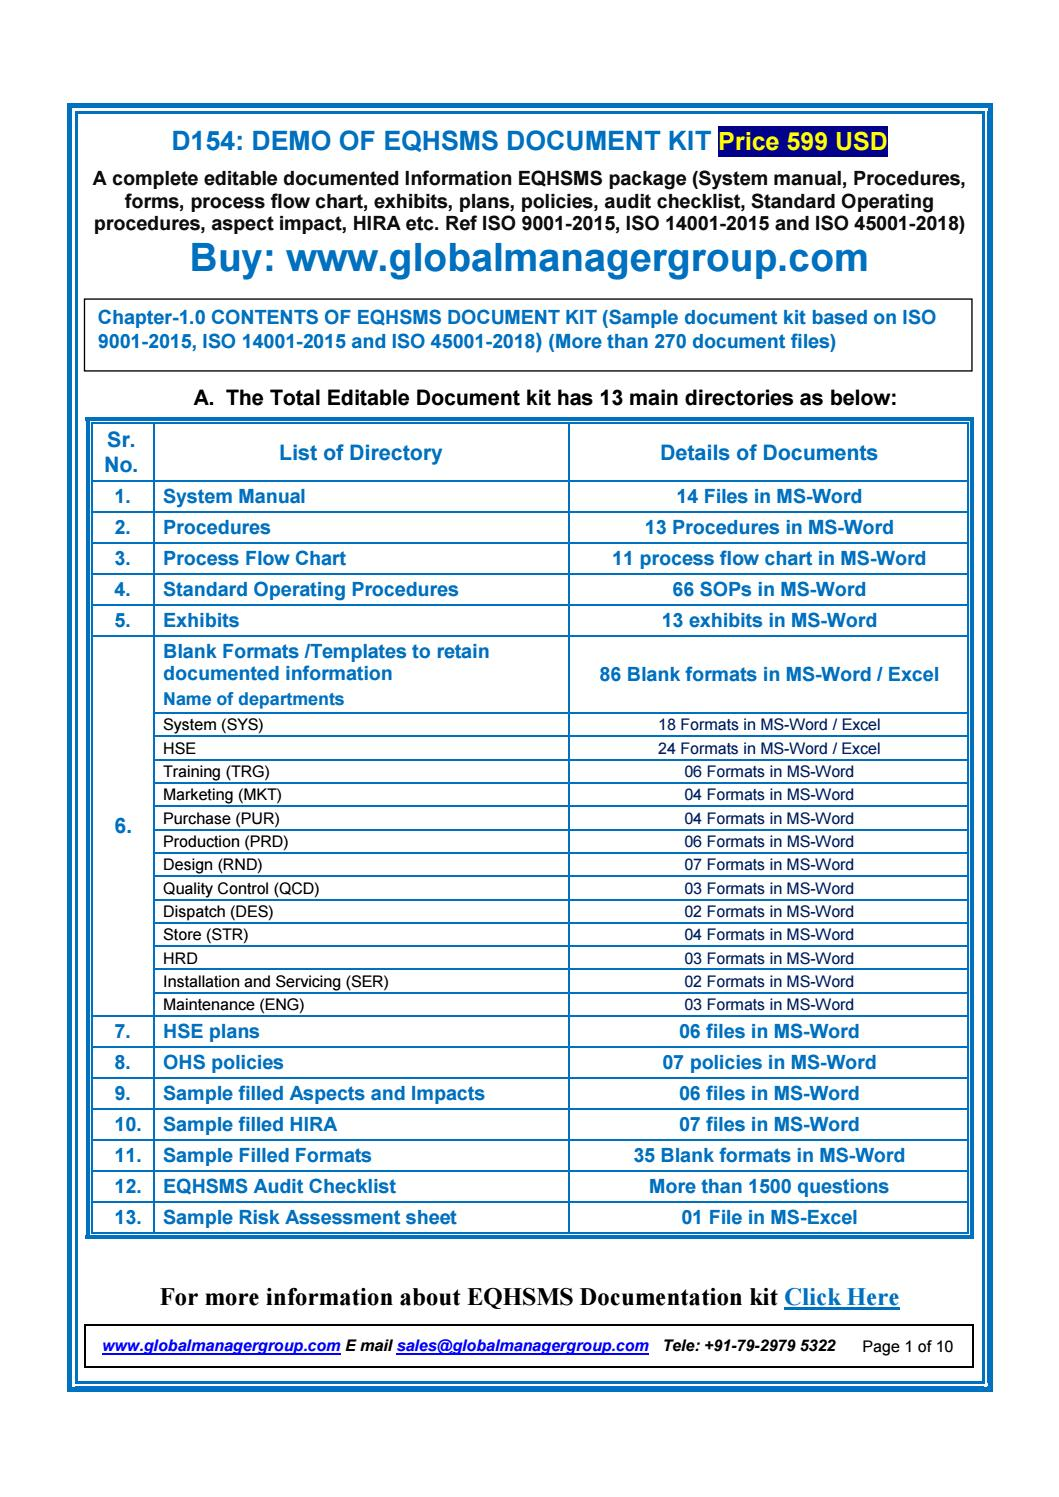 hight resolution of eqhsms documents with iso 9001 2015 iso 14001 2015 iso 45001 2018 requirements by global manager group issuu